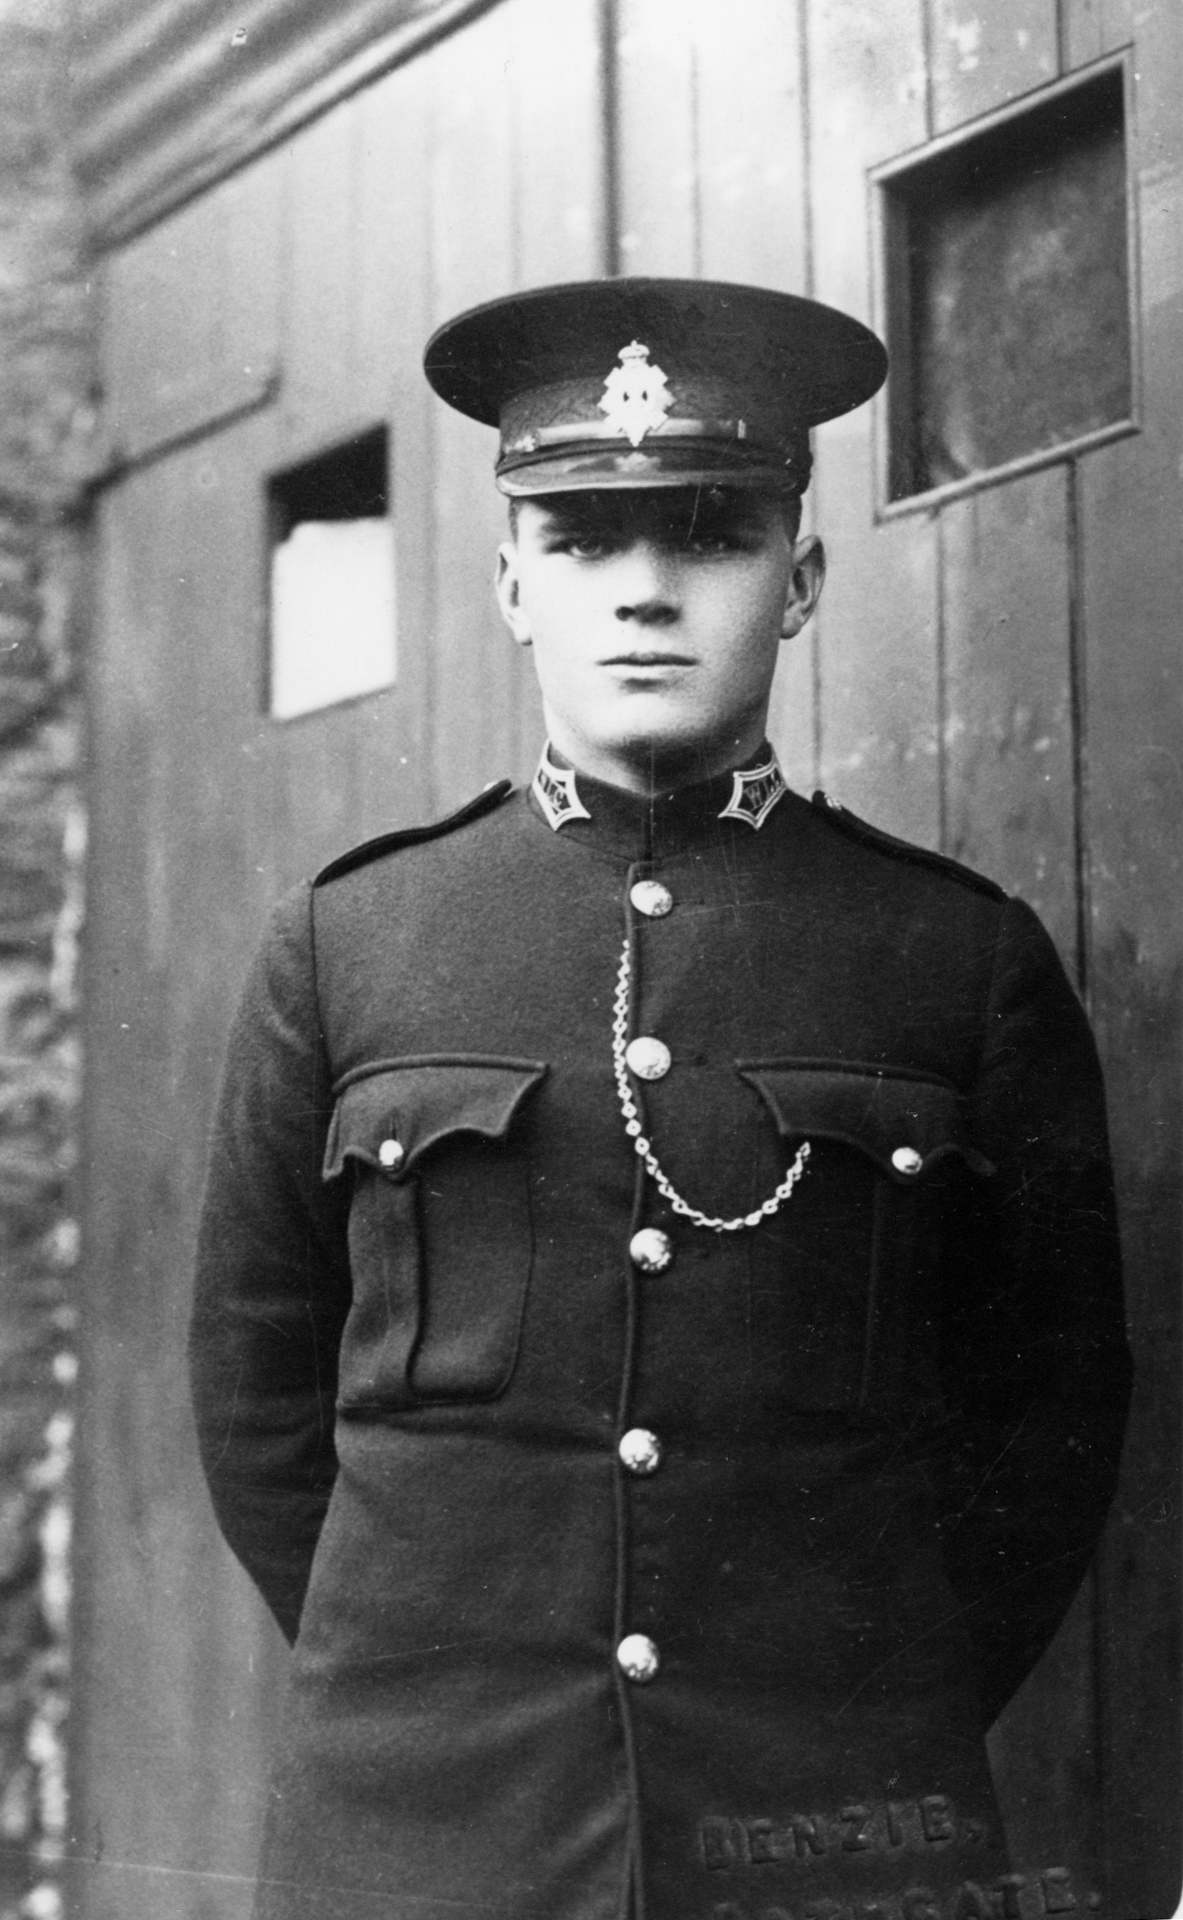 Policeman On Duty c.1930